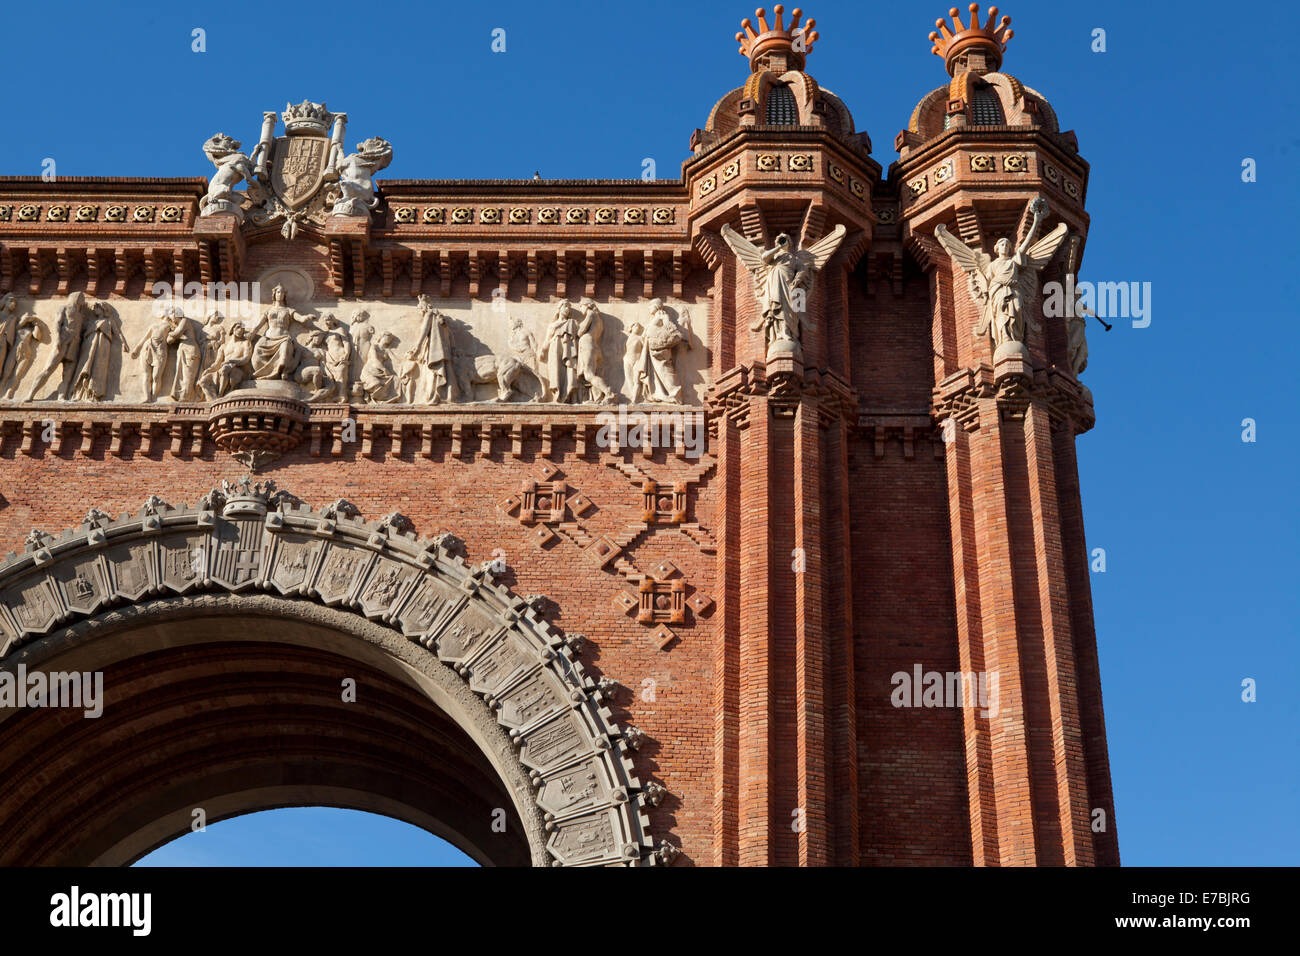 Detail of the Arc de Triomf in Barcelona, Catalunia, Spain - Stock Image